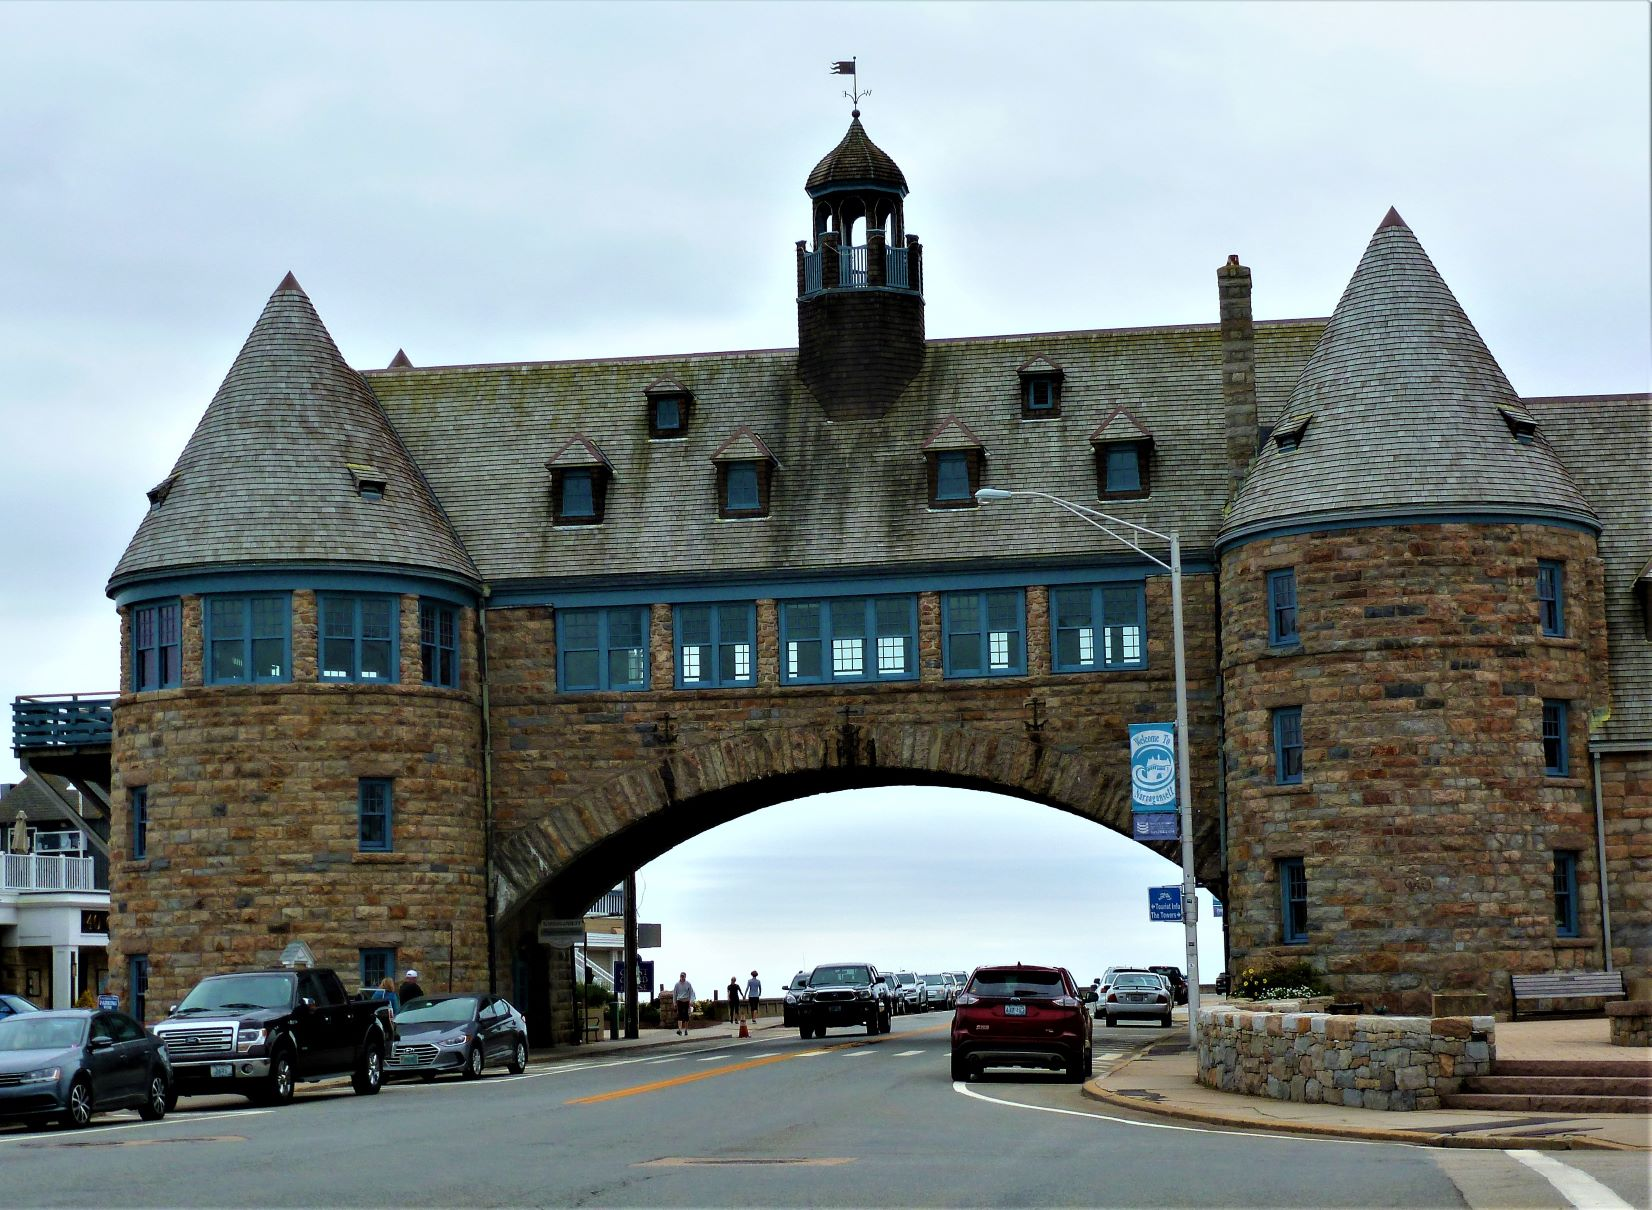 The Towers Building Narragansett R.I.